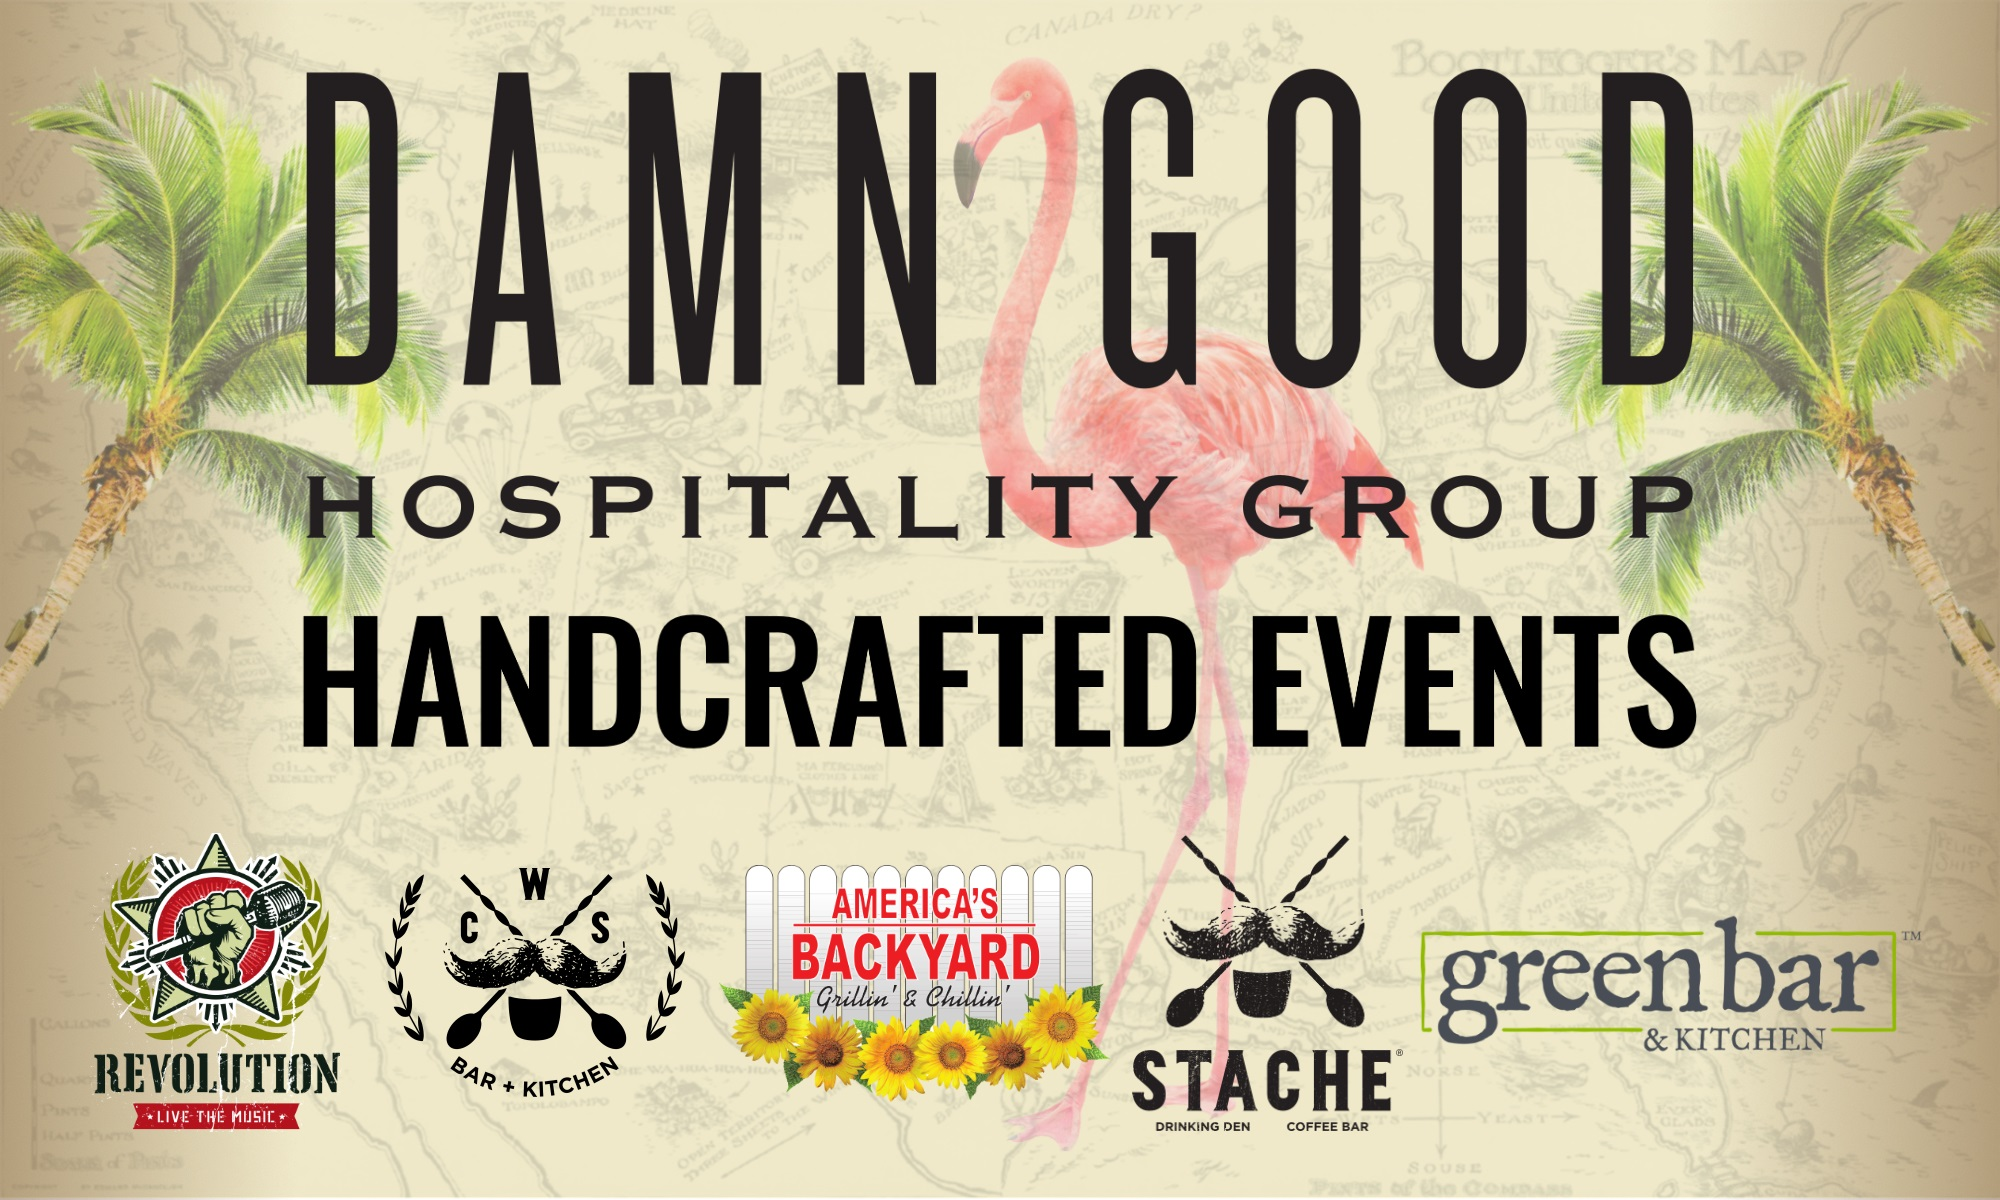 Image of Damn Good Hospitality Group's Handcrafted Events graphic